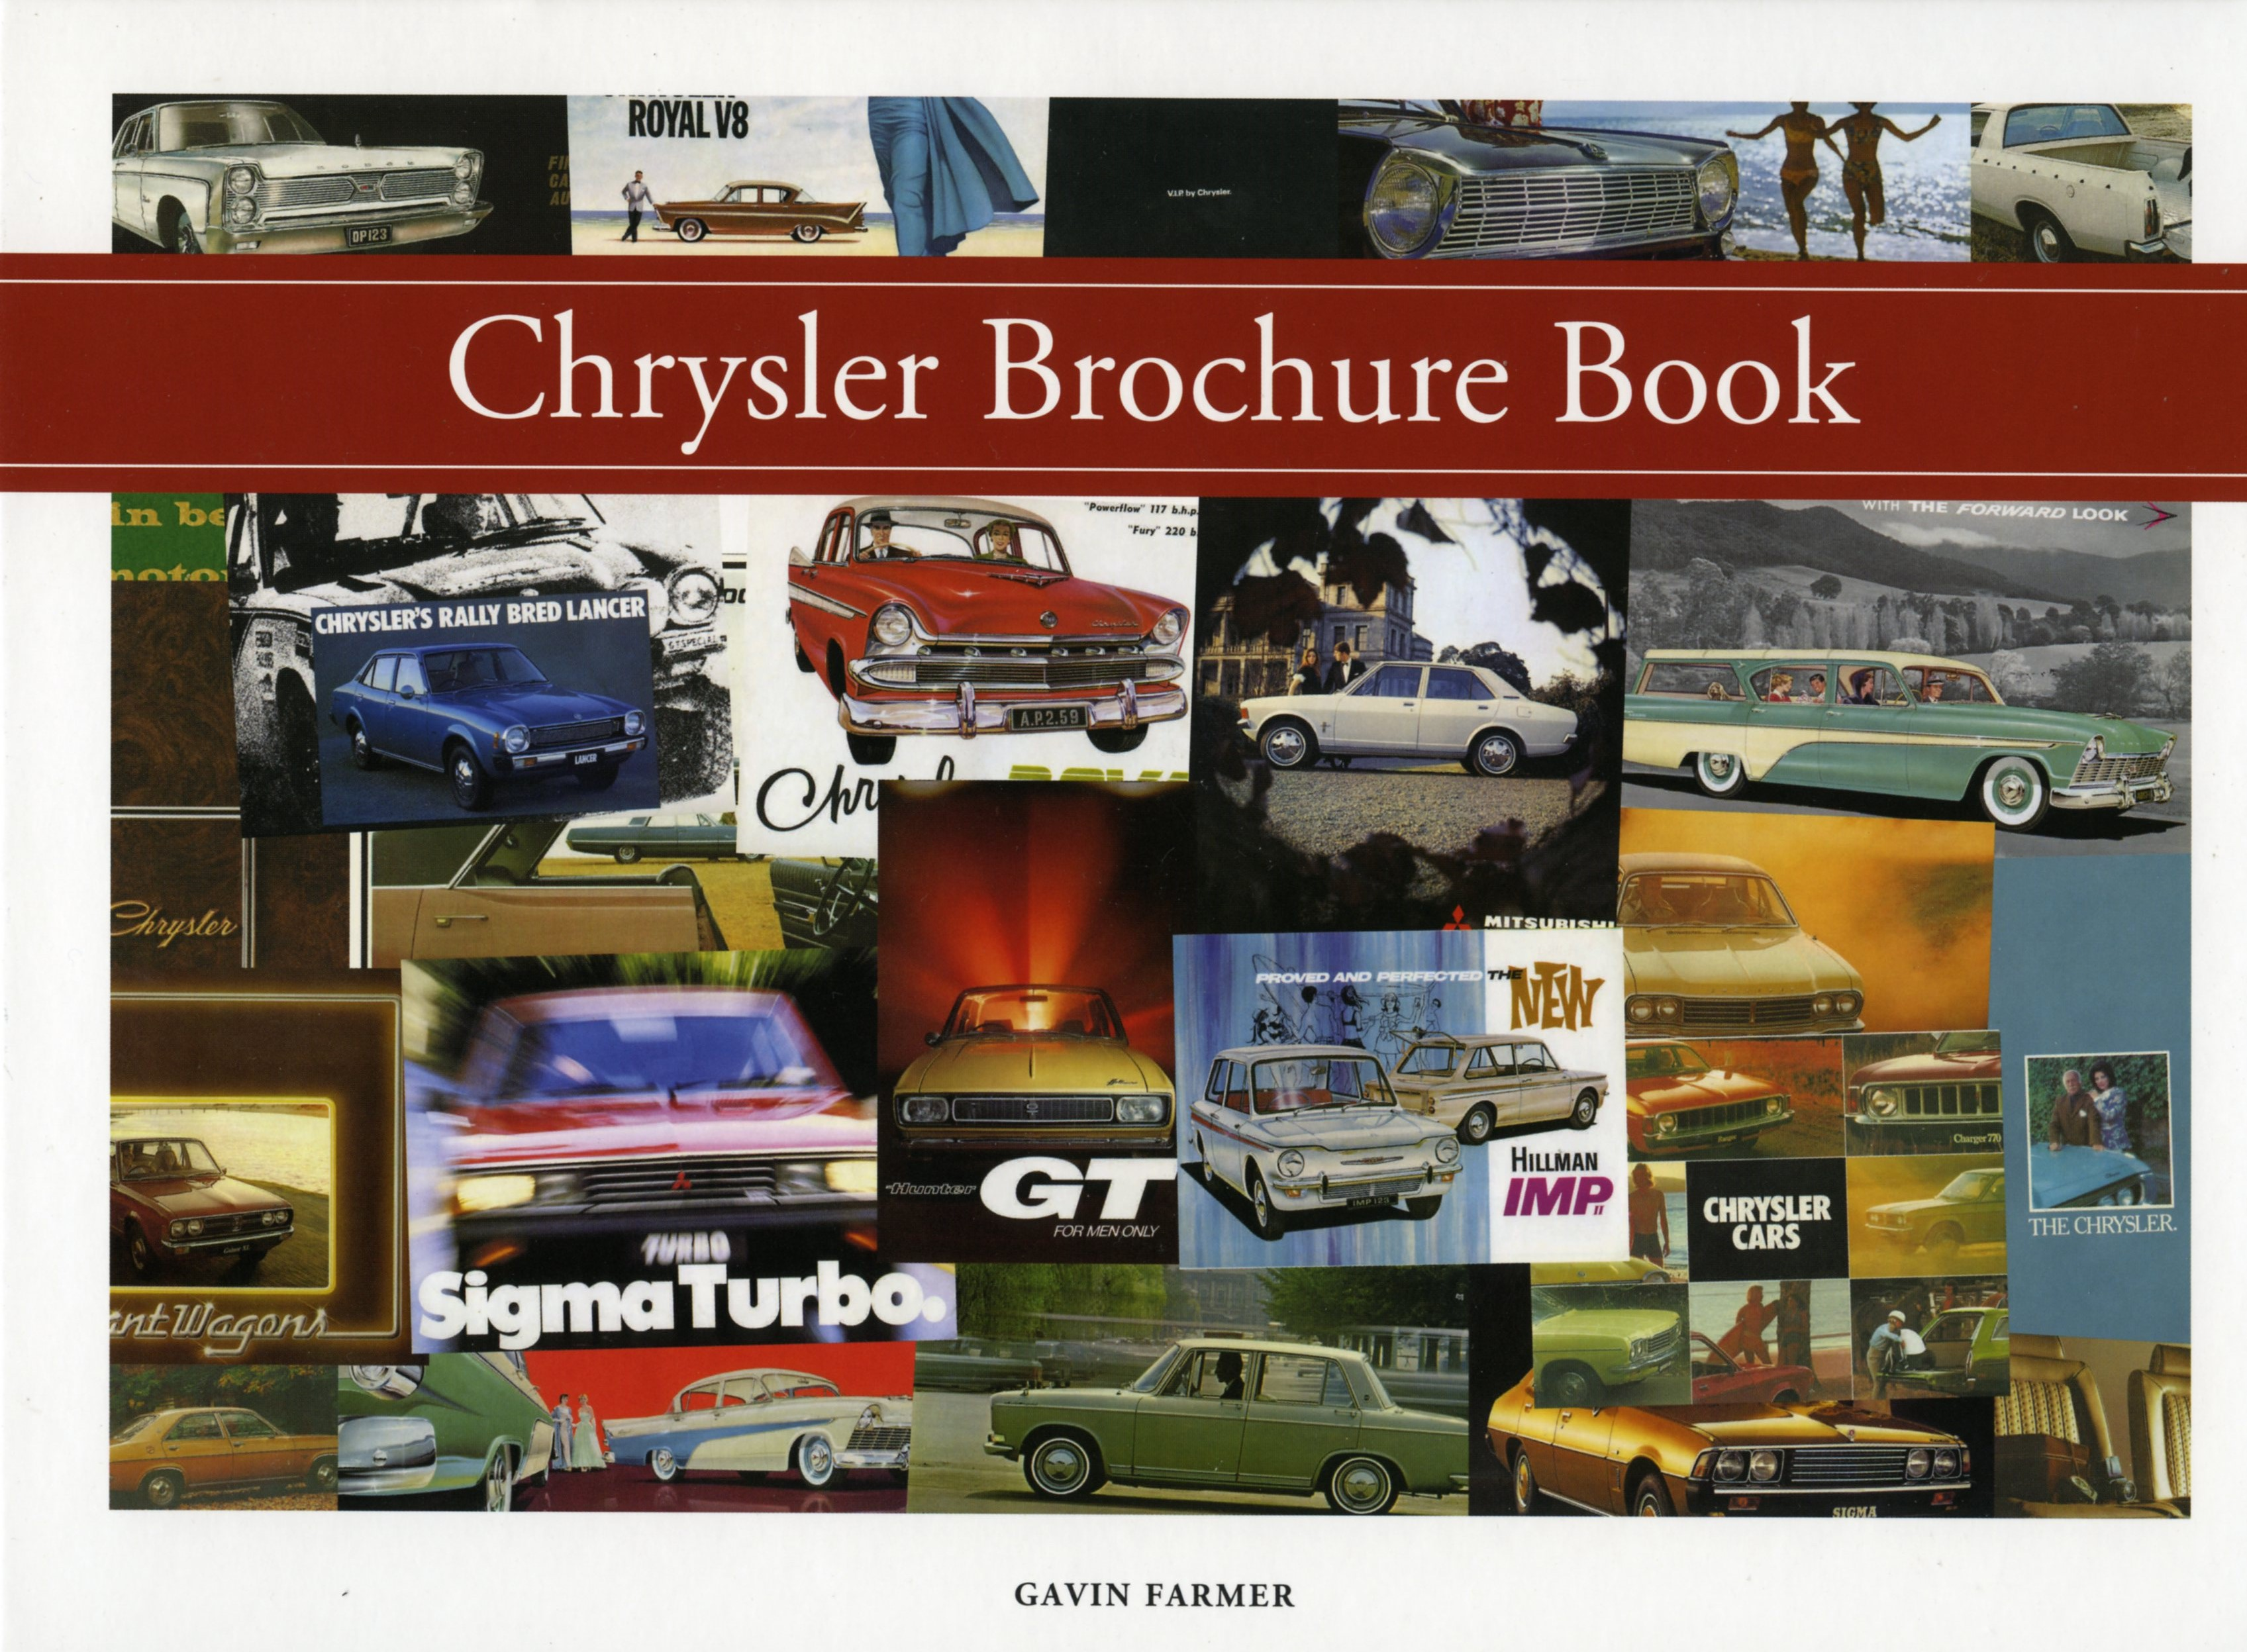 Chrysler Brochure Book by Gavin Farmer